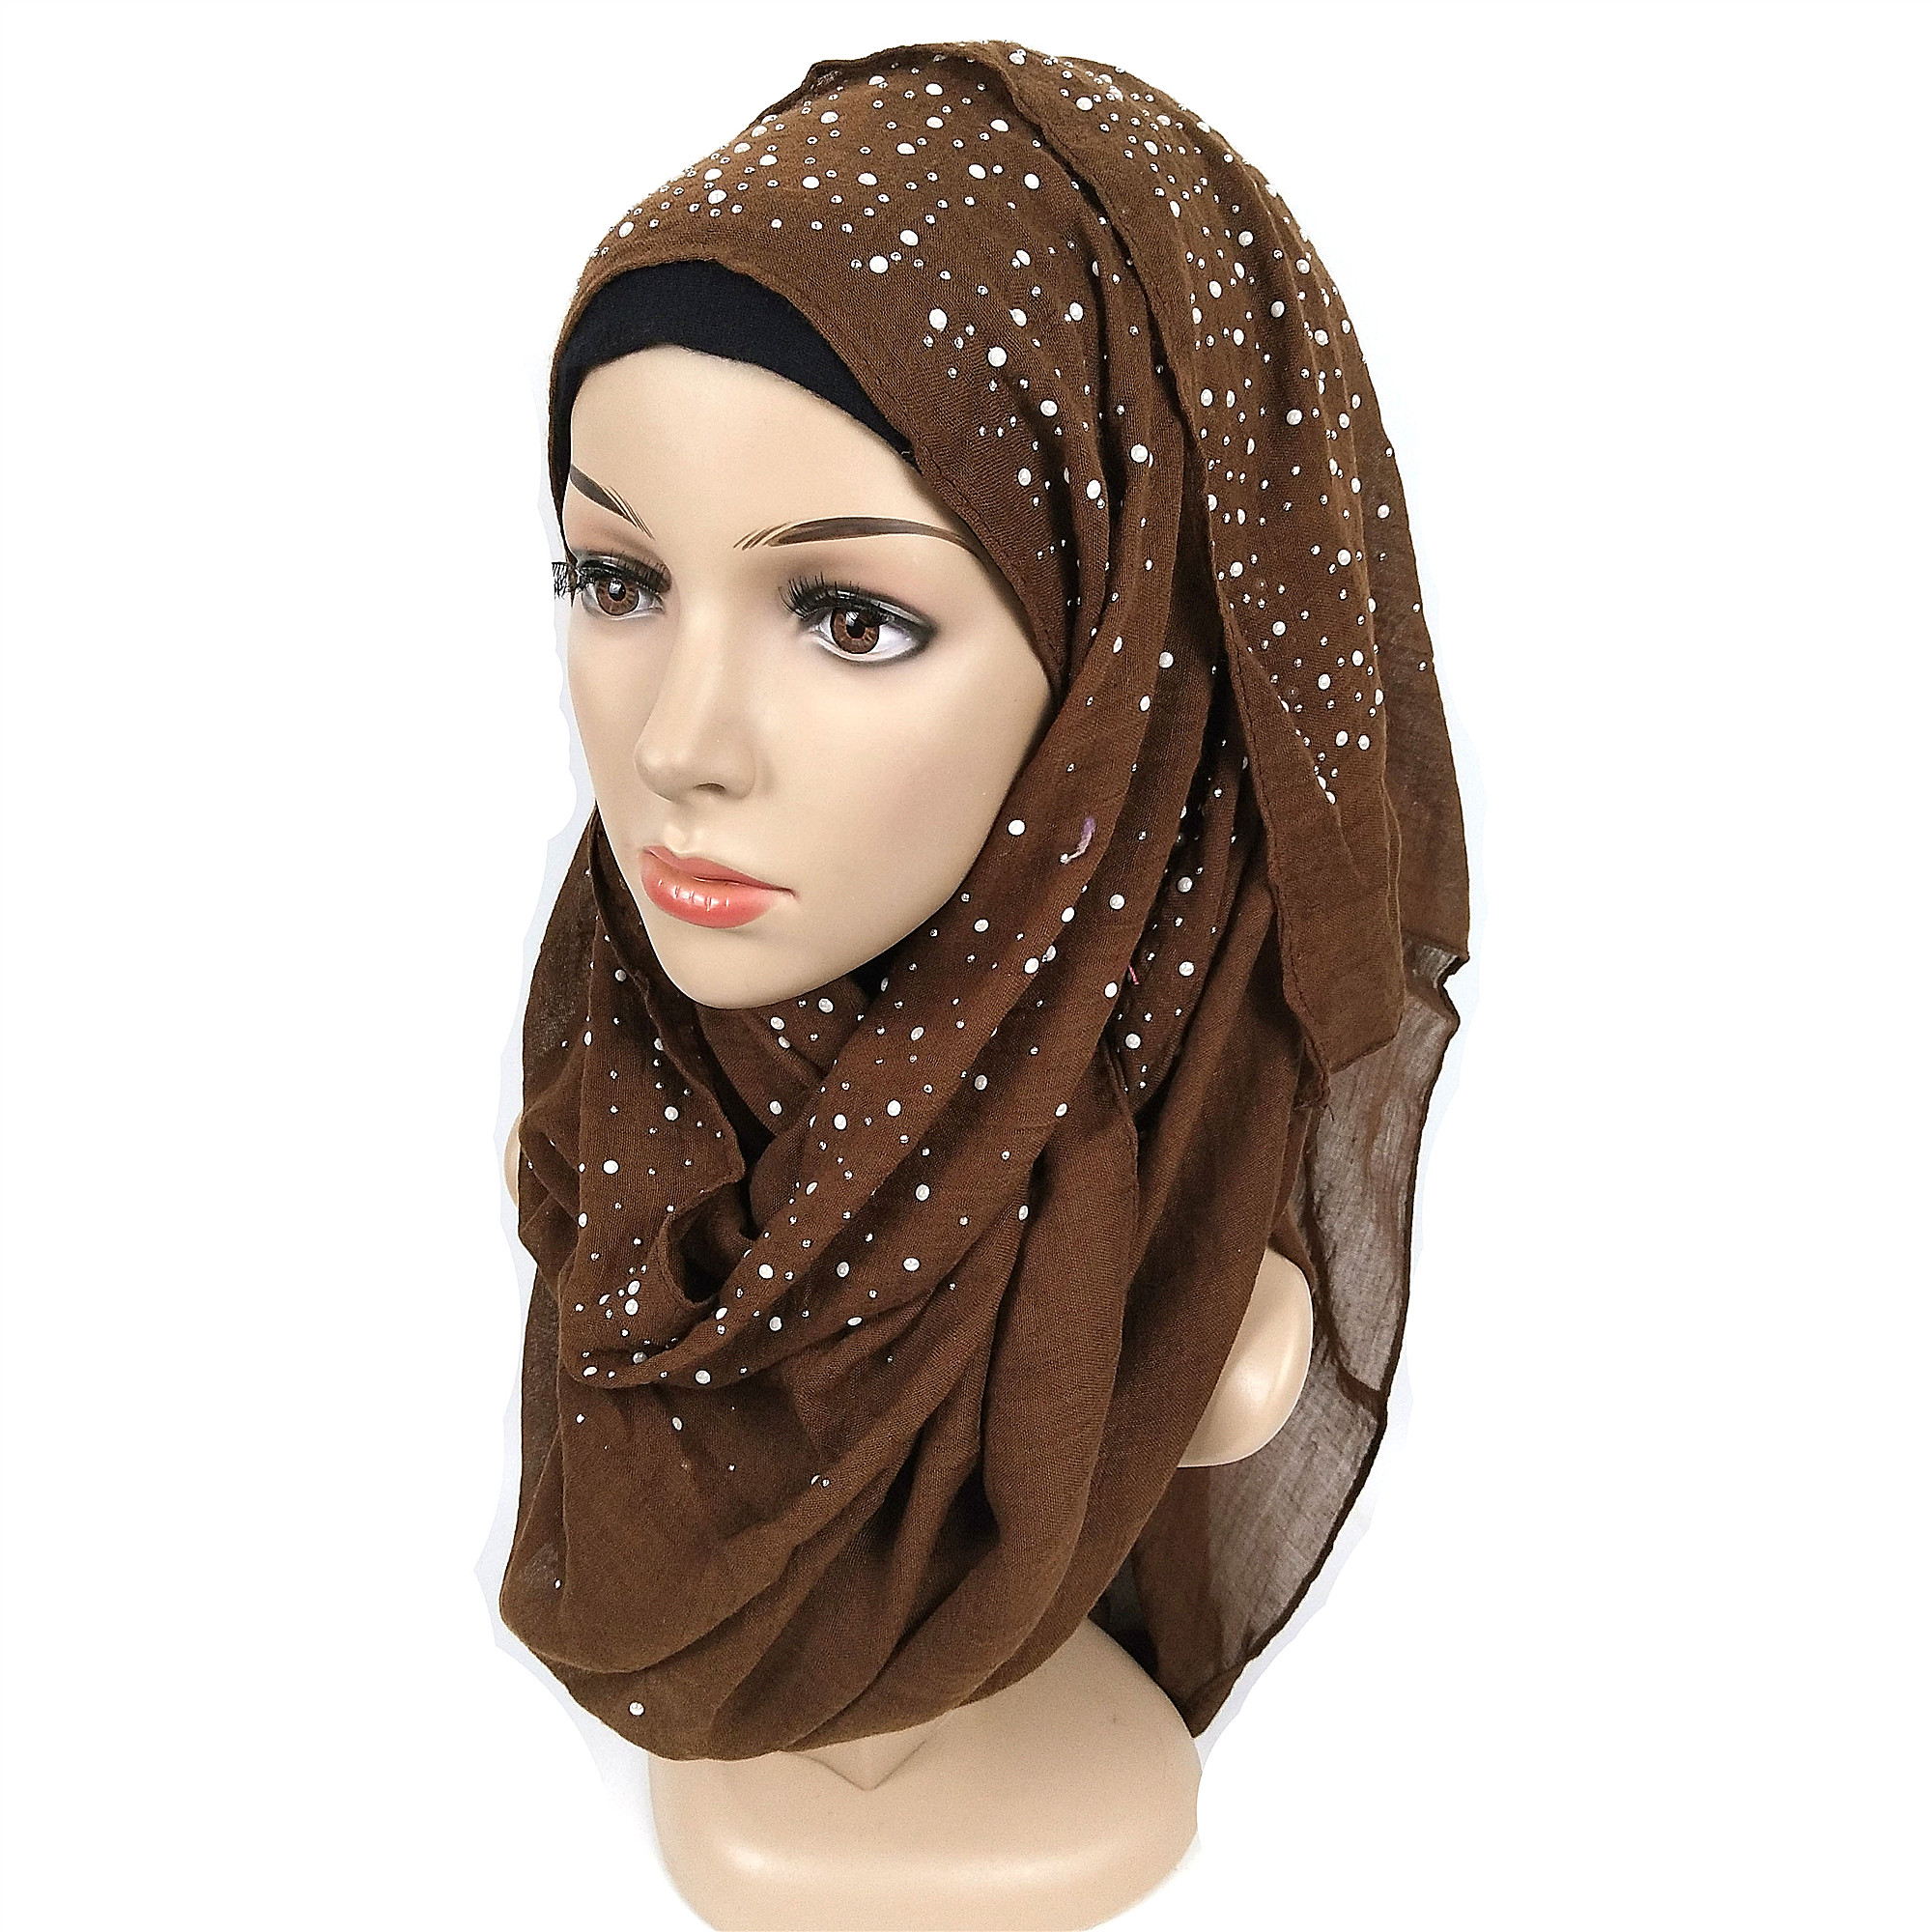 N3 High qualit plain Iyron beads scarf cotton scarves studs silver pearls scarves  headband wrap muslim scarves shawls 180*70cm